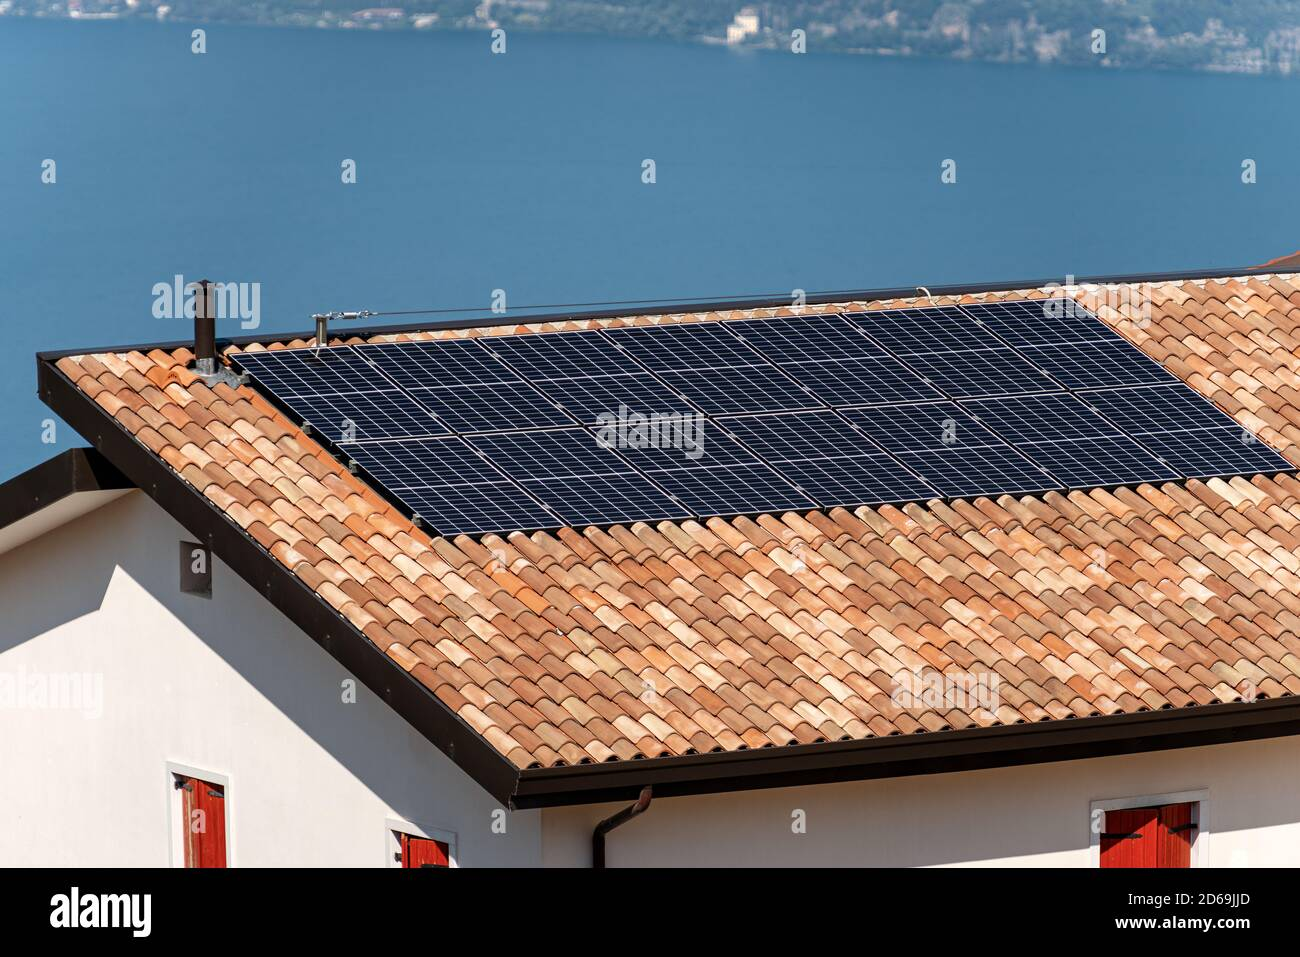 Solar panels on the roof of a house with a blue lake on the background. Renewable energy concept Stock Photo